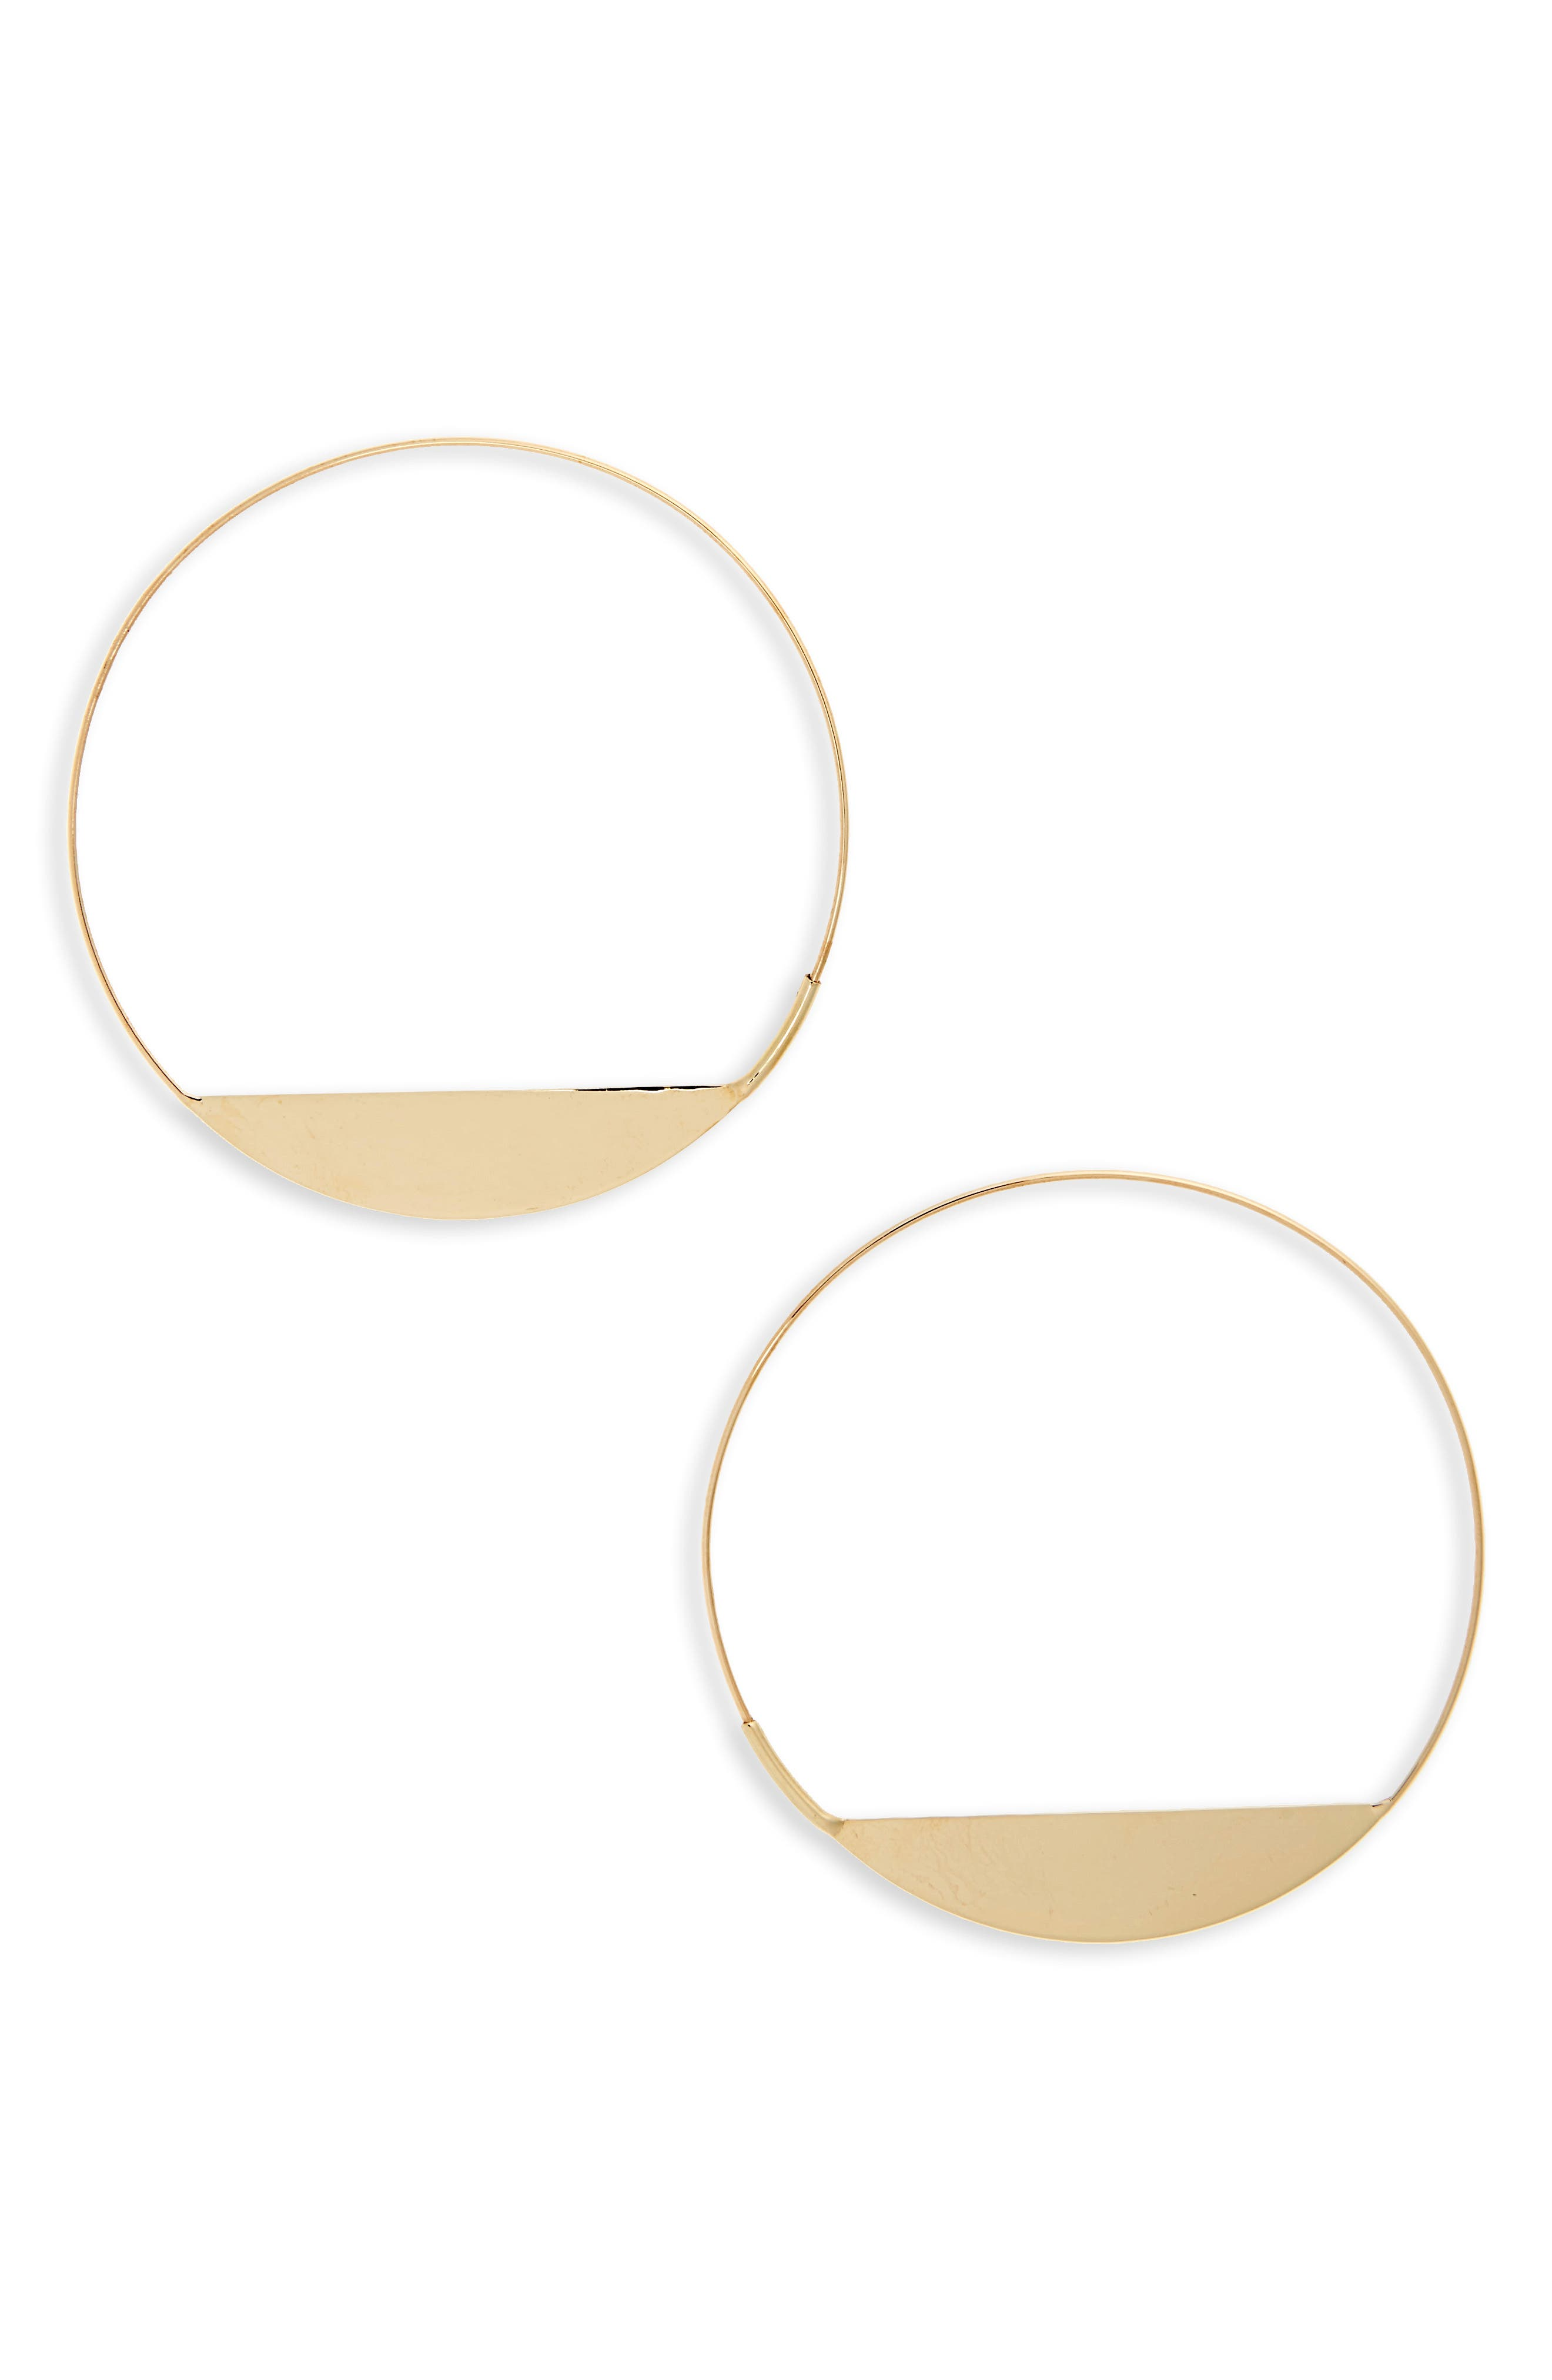 Eclipse Magic Hoop,                         Main,                         color, Yellow Gold